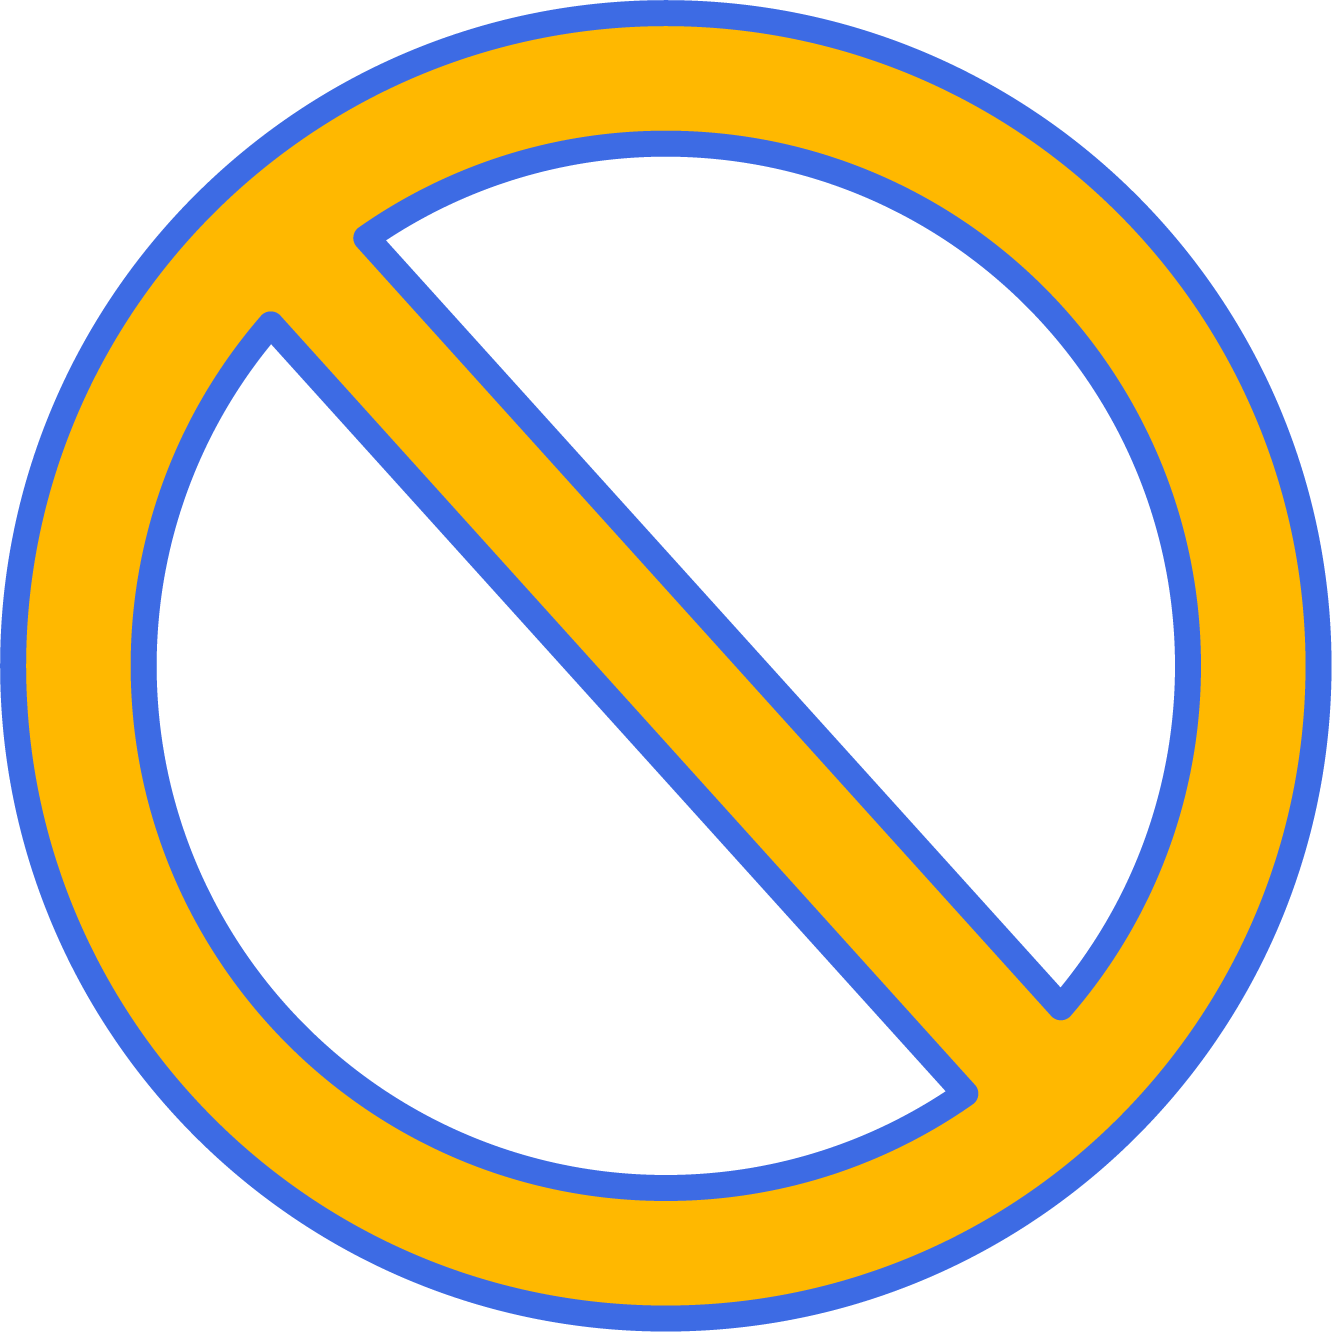 Yellow prohibited sign with blue borders